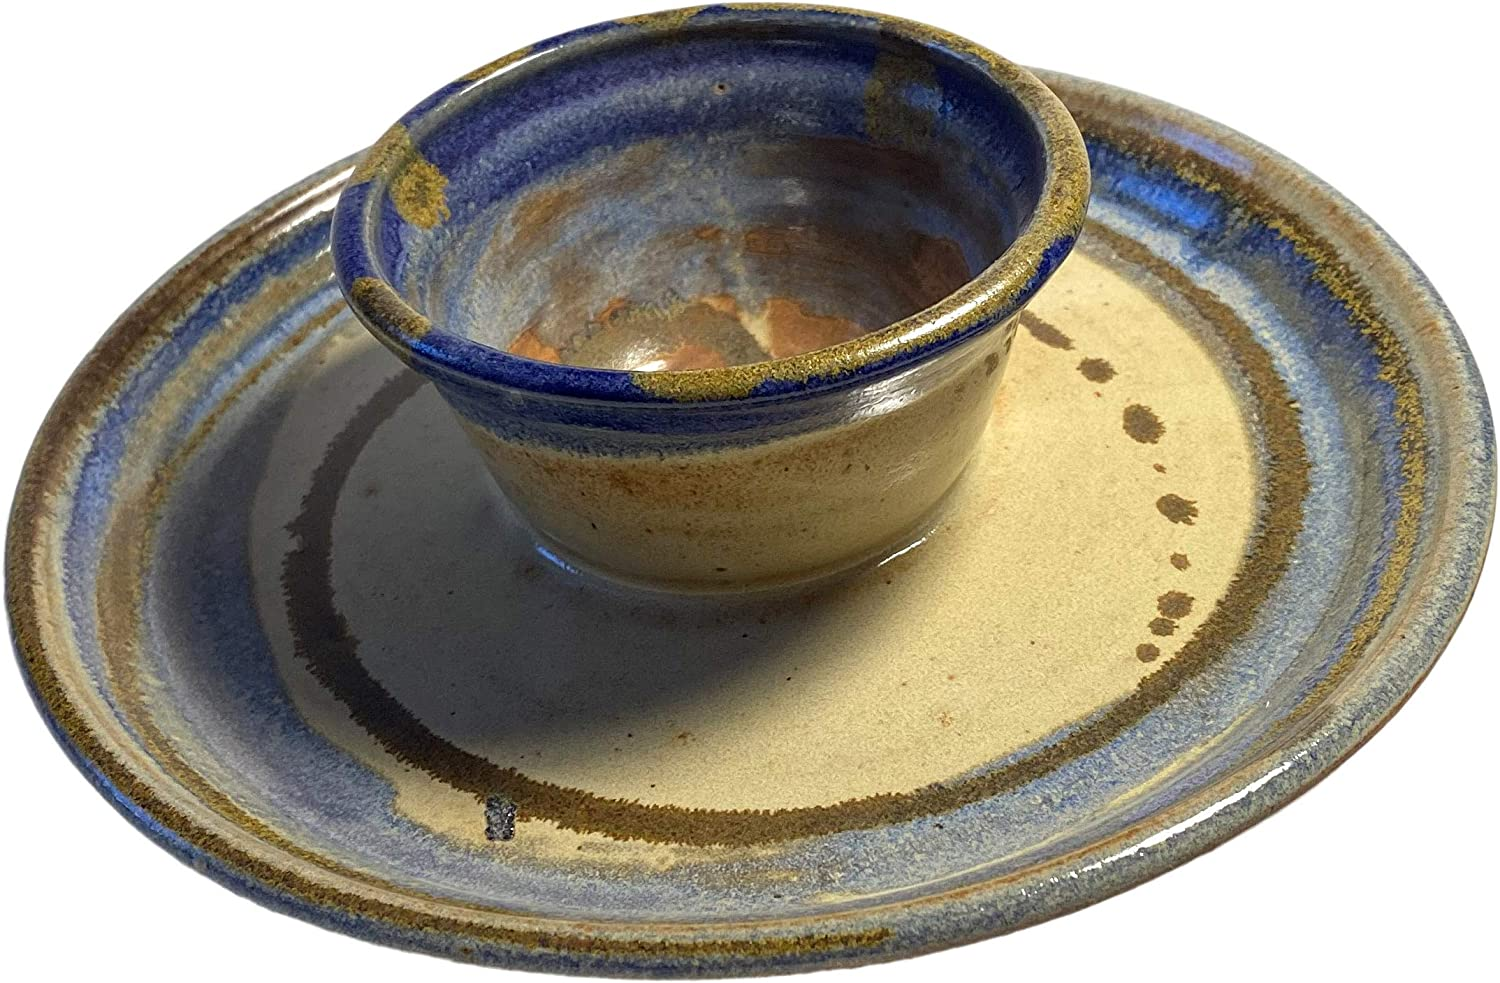 Hand Spun Hand Painted and Hand Glazed Suitable Home Decor Dip Tray American Made by Integrity1 Hand Crafted Stoneware Hand Made Artistic Ceramic Serving Plate Set for Chips